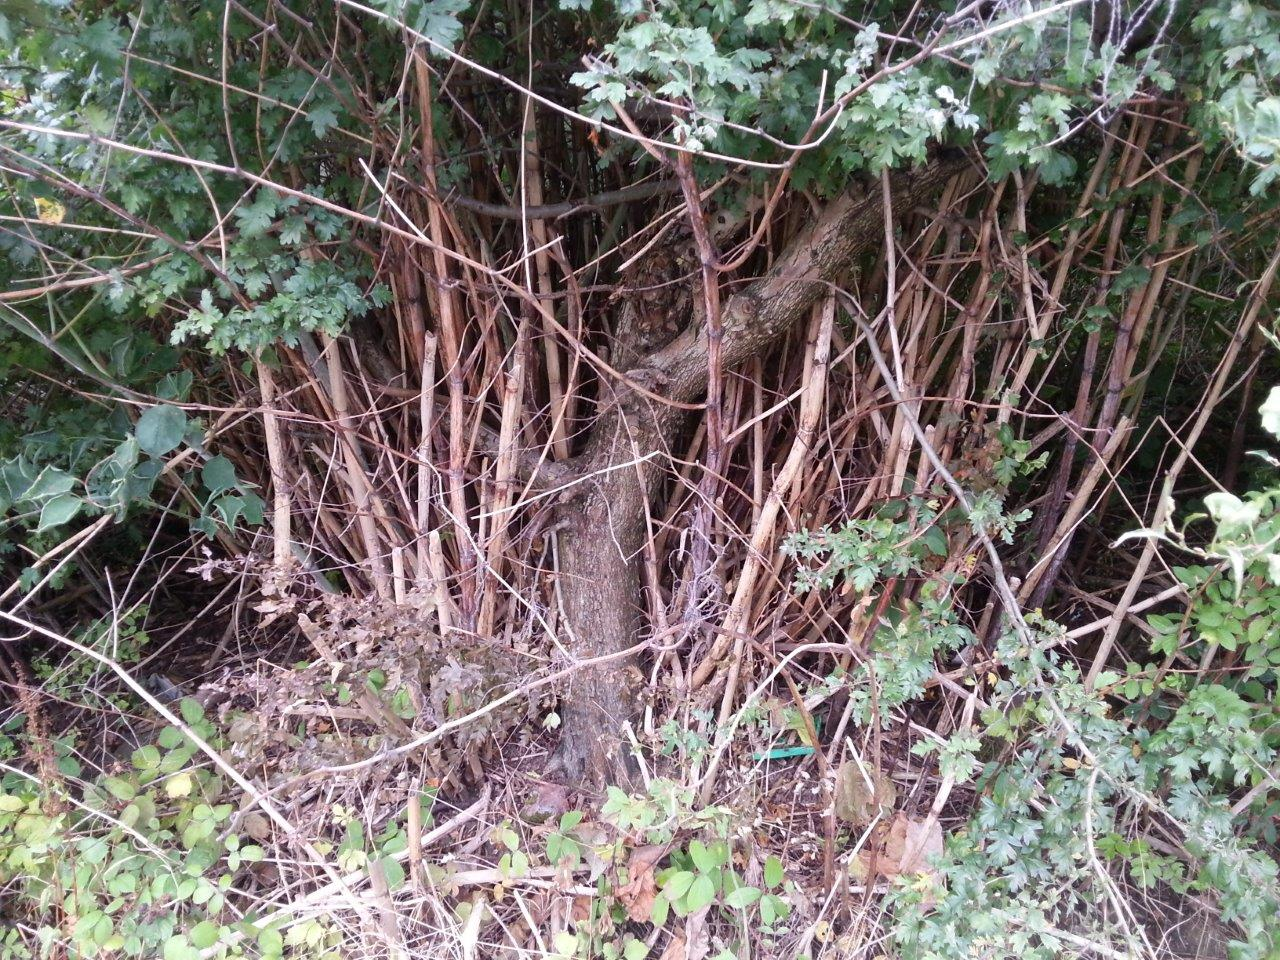 Japanese Knotweed Stalks